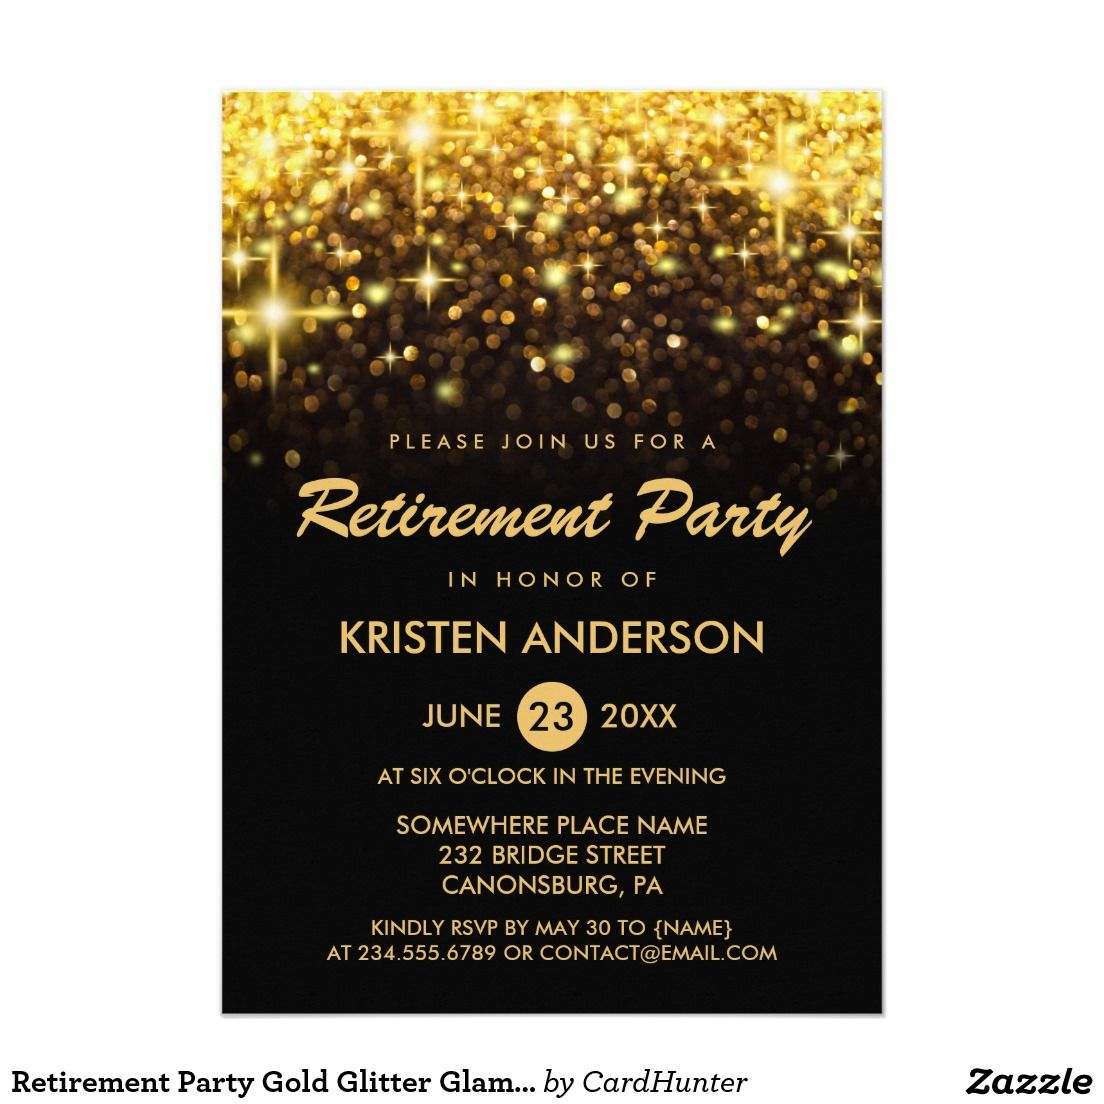 Retirement Party Gold Glitter Glamour Sparkles | Corporate Party ...